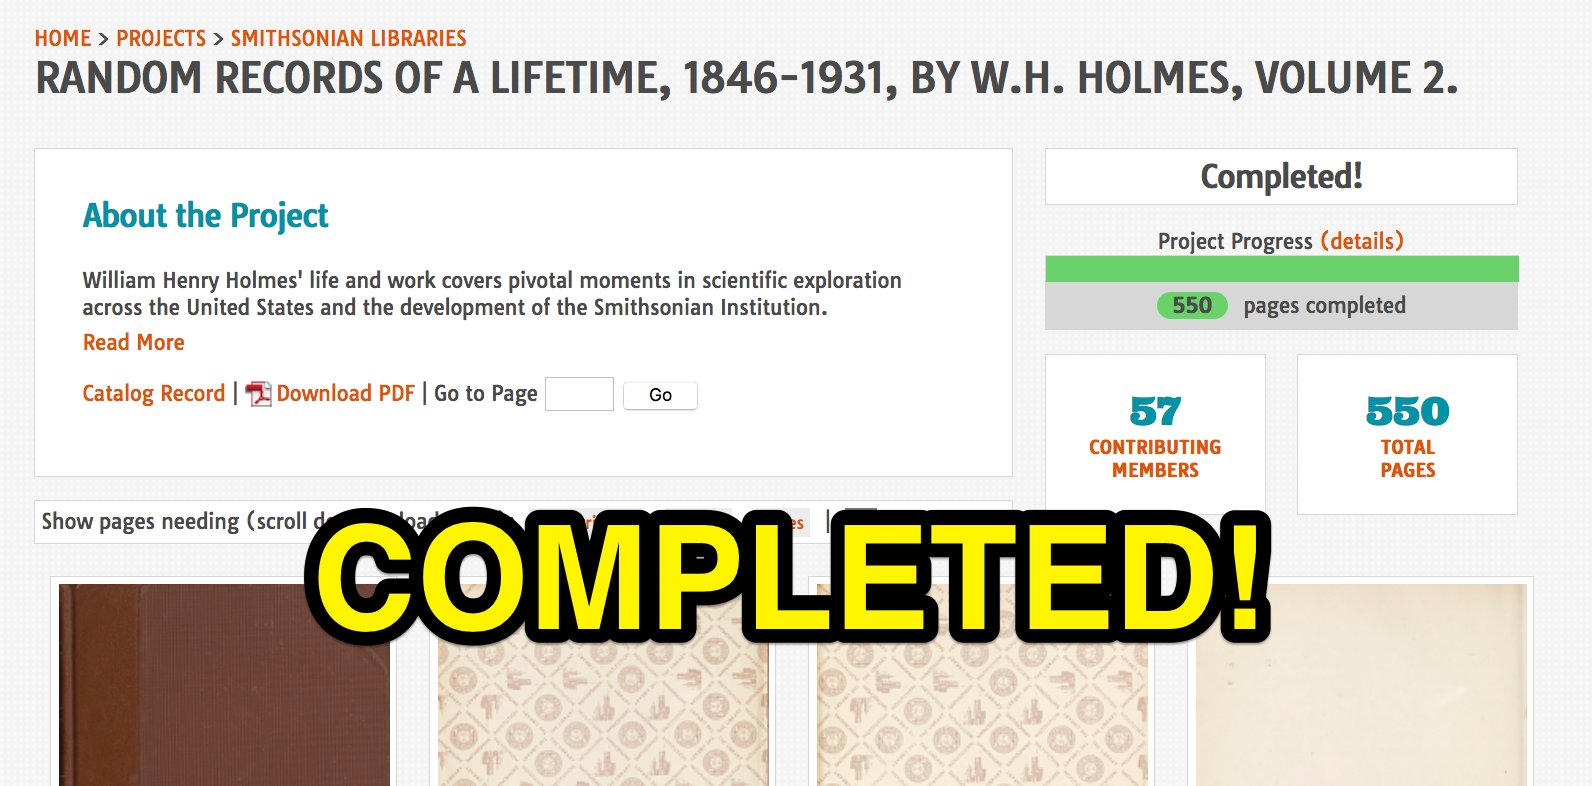 And Volume 2 of #ManyHatsofHolmes is completed! Hooray for those 57 #volunpeers @SILibraries @SmithsonianArch @BioDivLibrary @FieldBookProj https://t.co/T9jBDV3bde